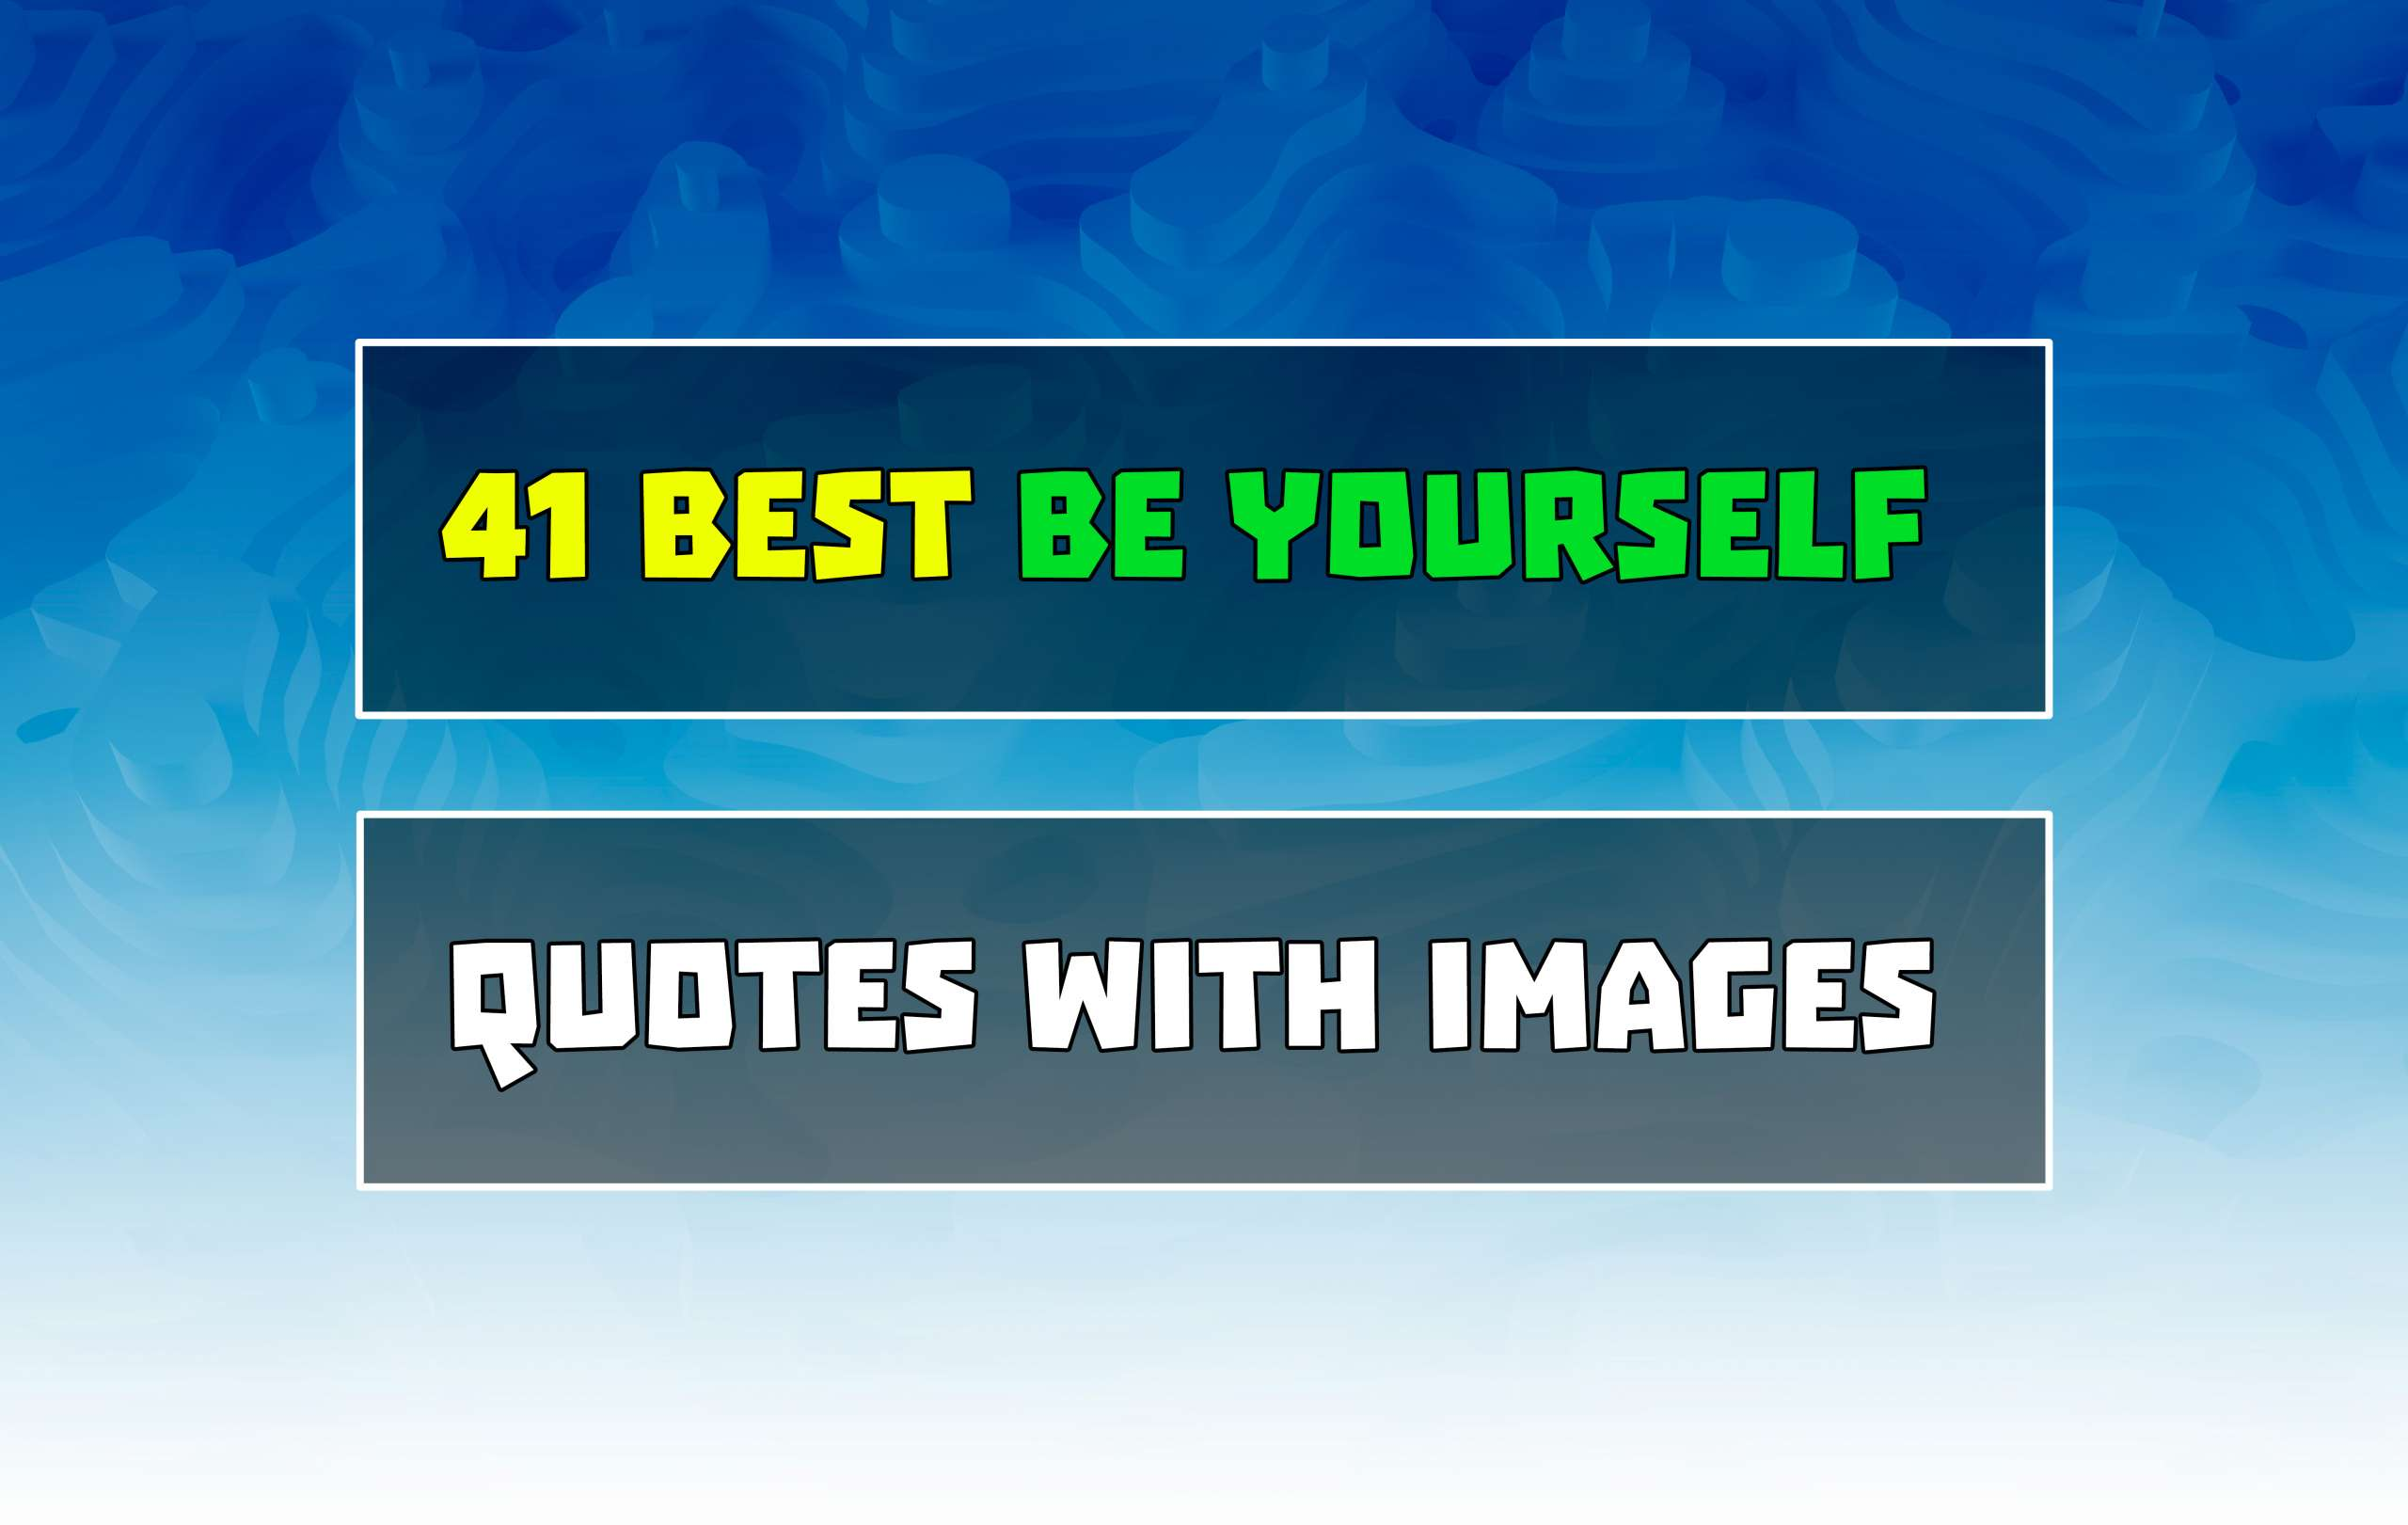 41 Best Be Yourself Quotes with Images